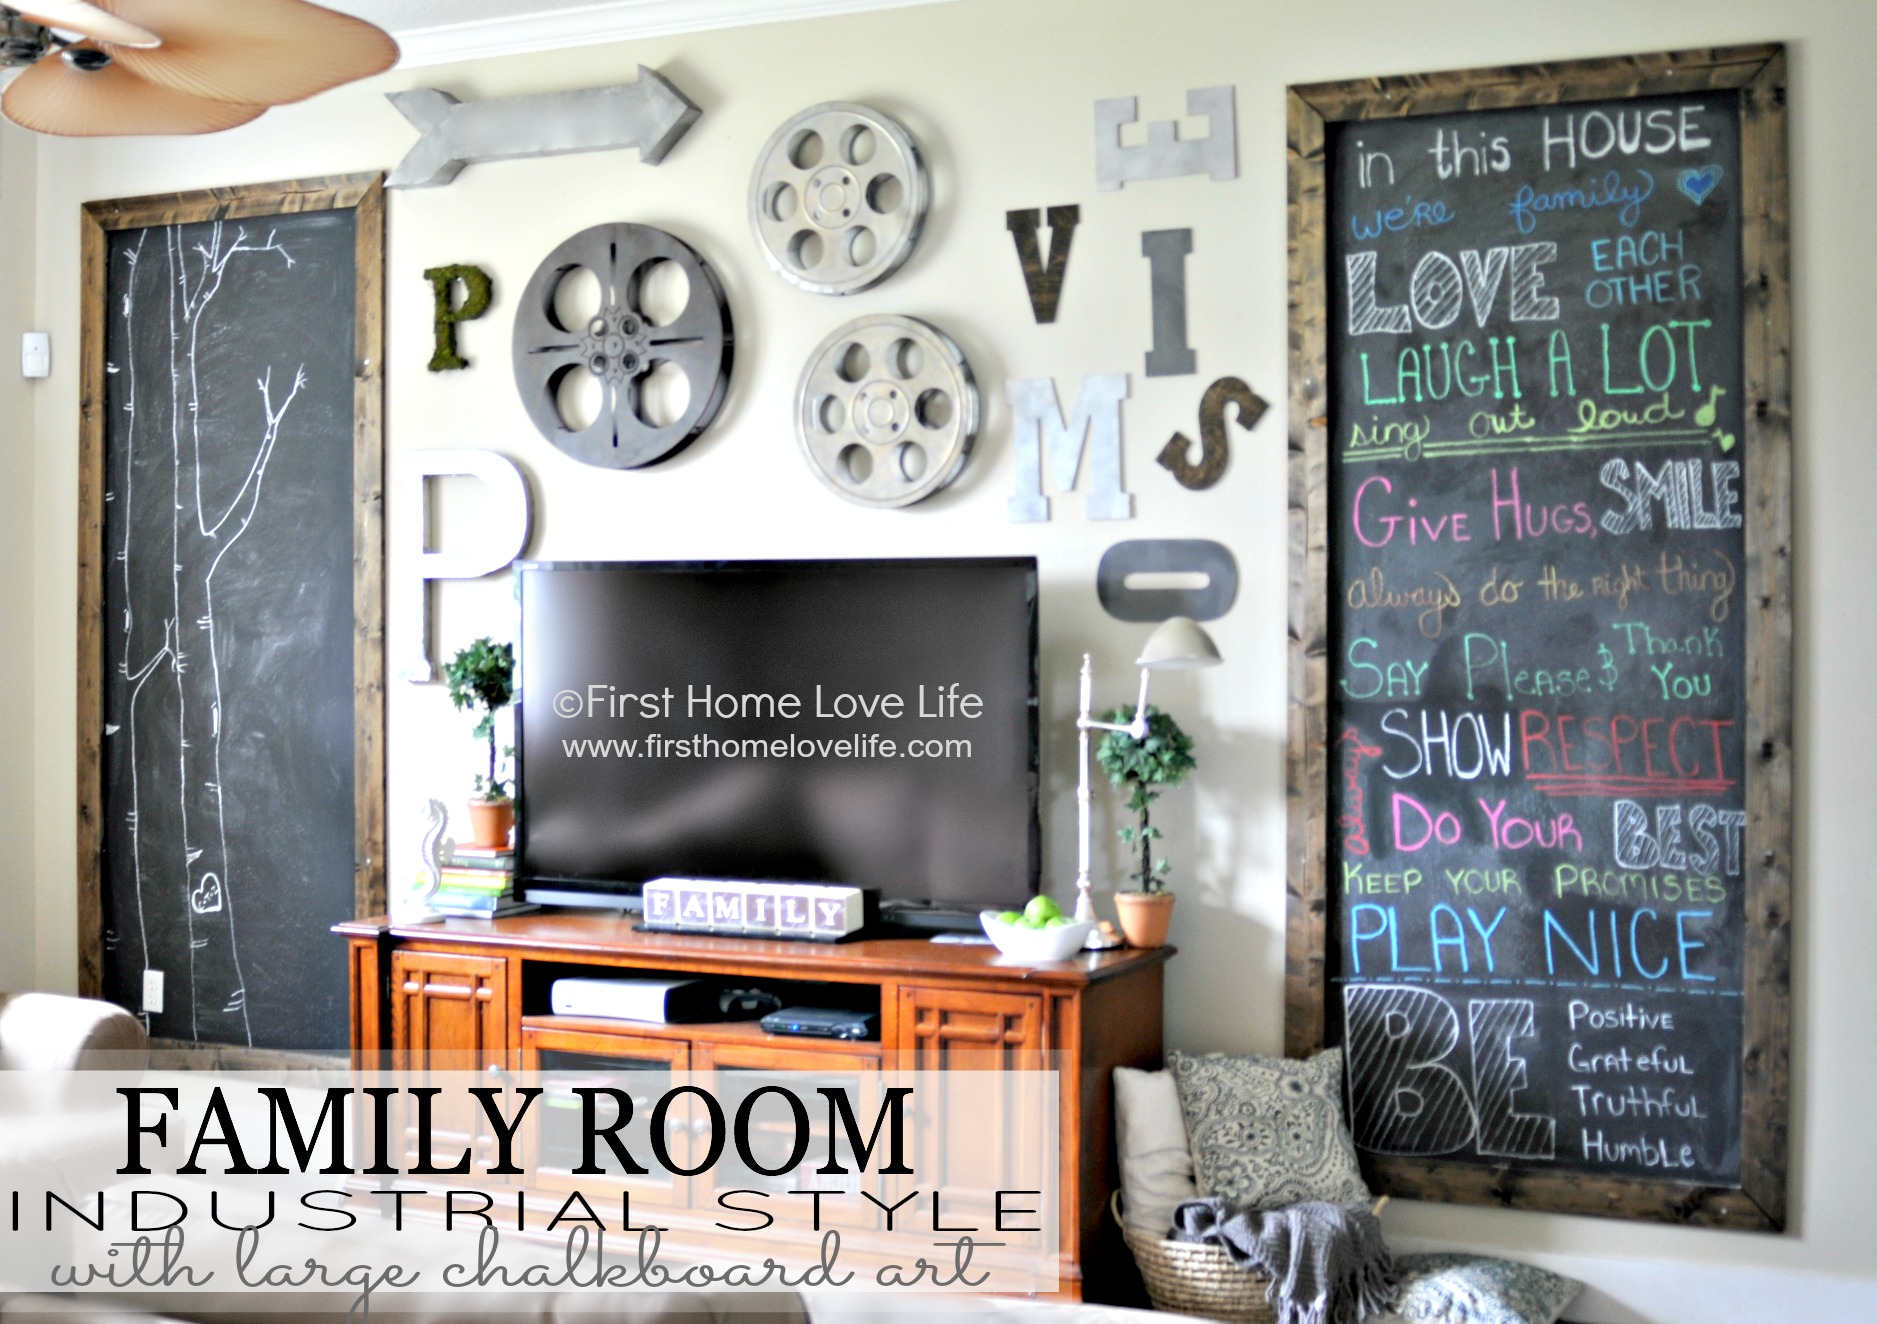 industrial style family room gallery wall with chalkboard